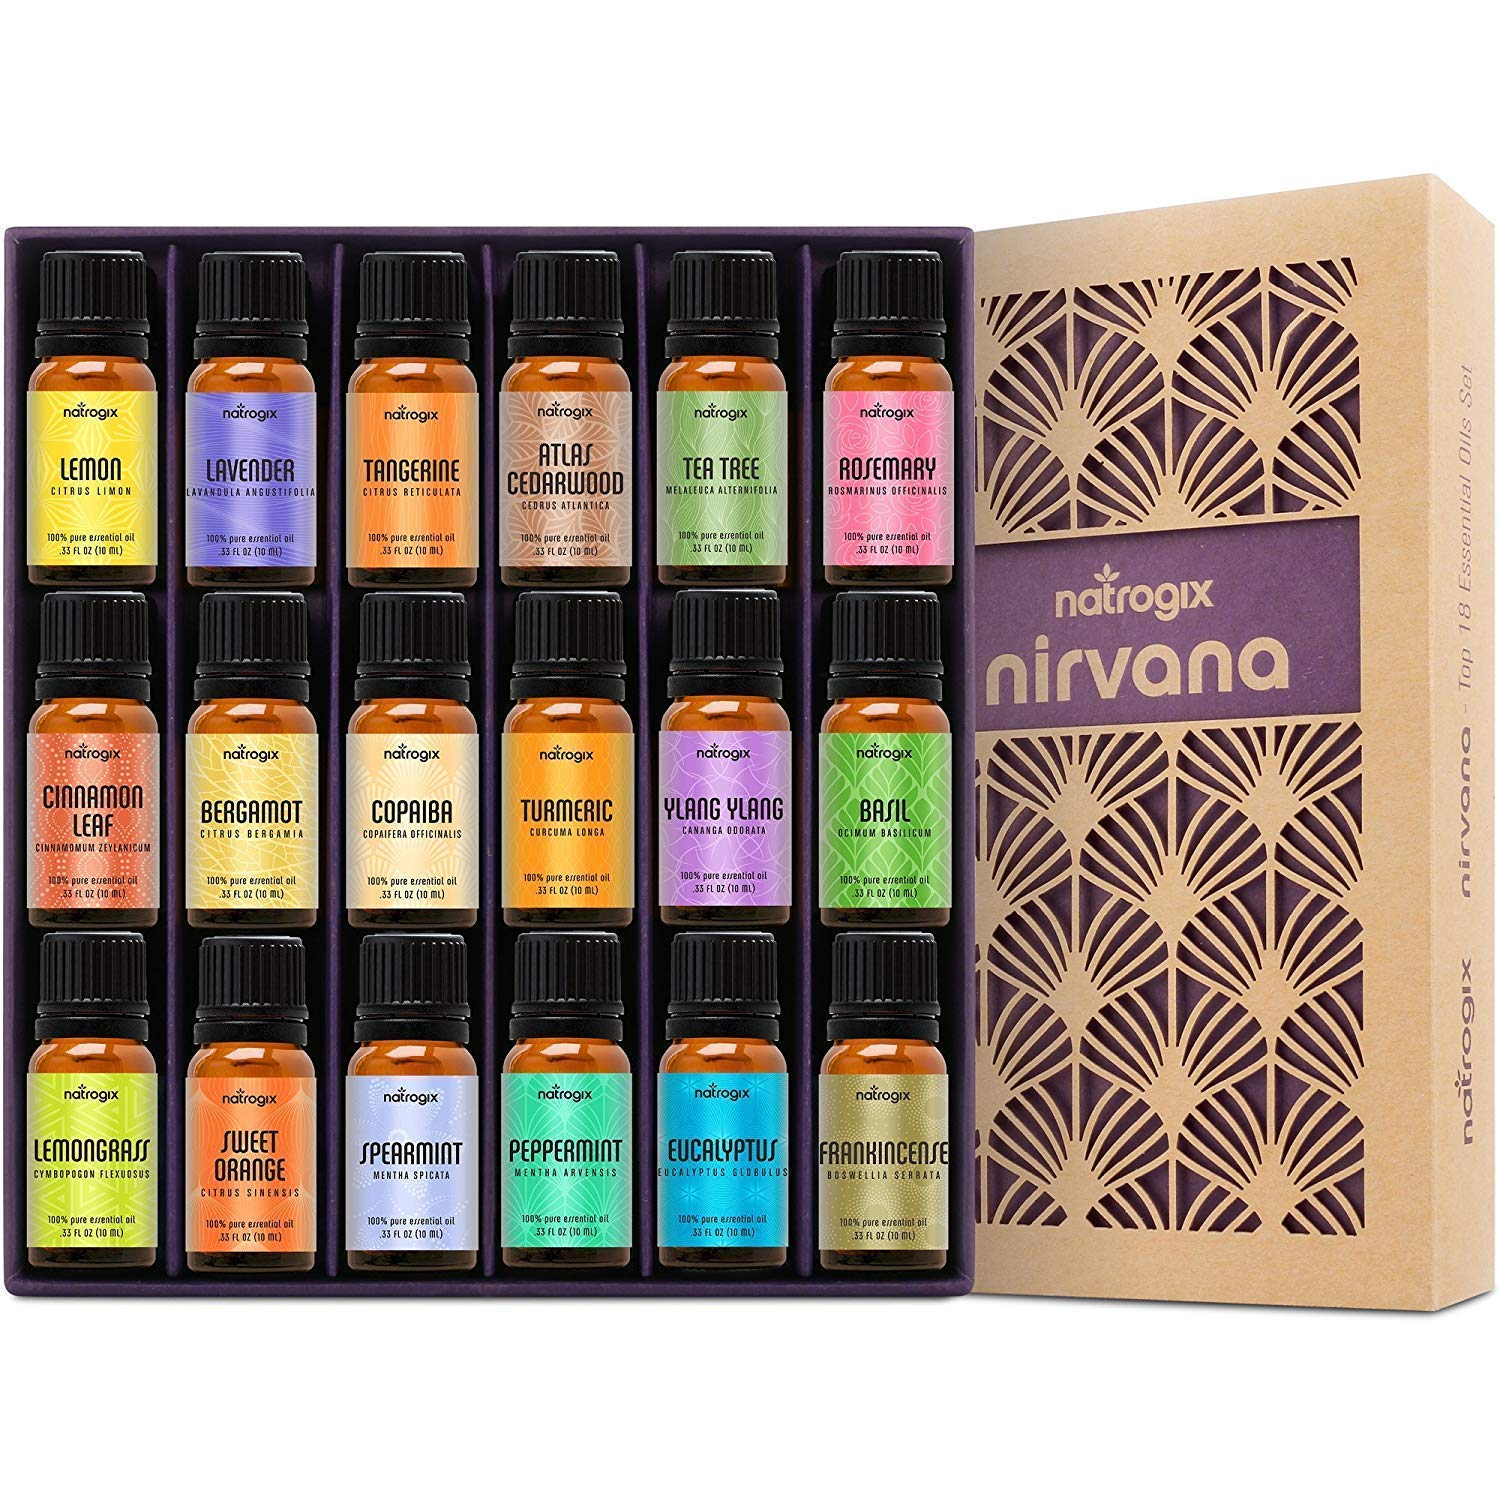 Natrogix Nirvana Essential Oils Book